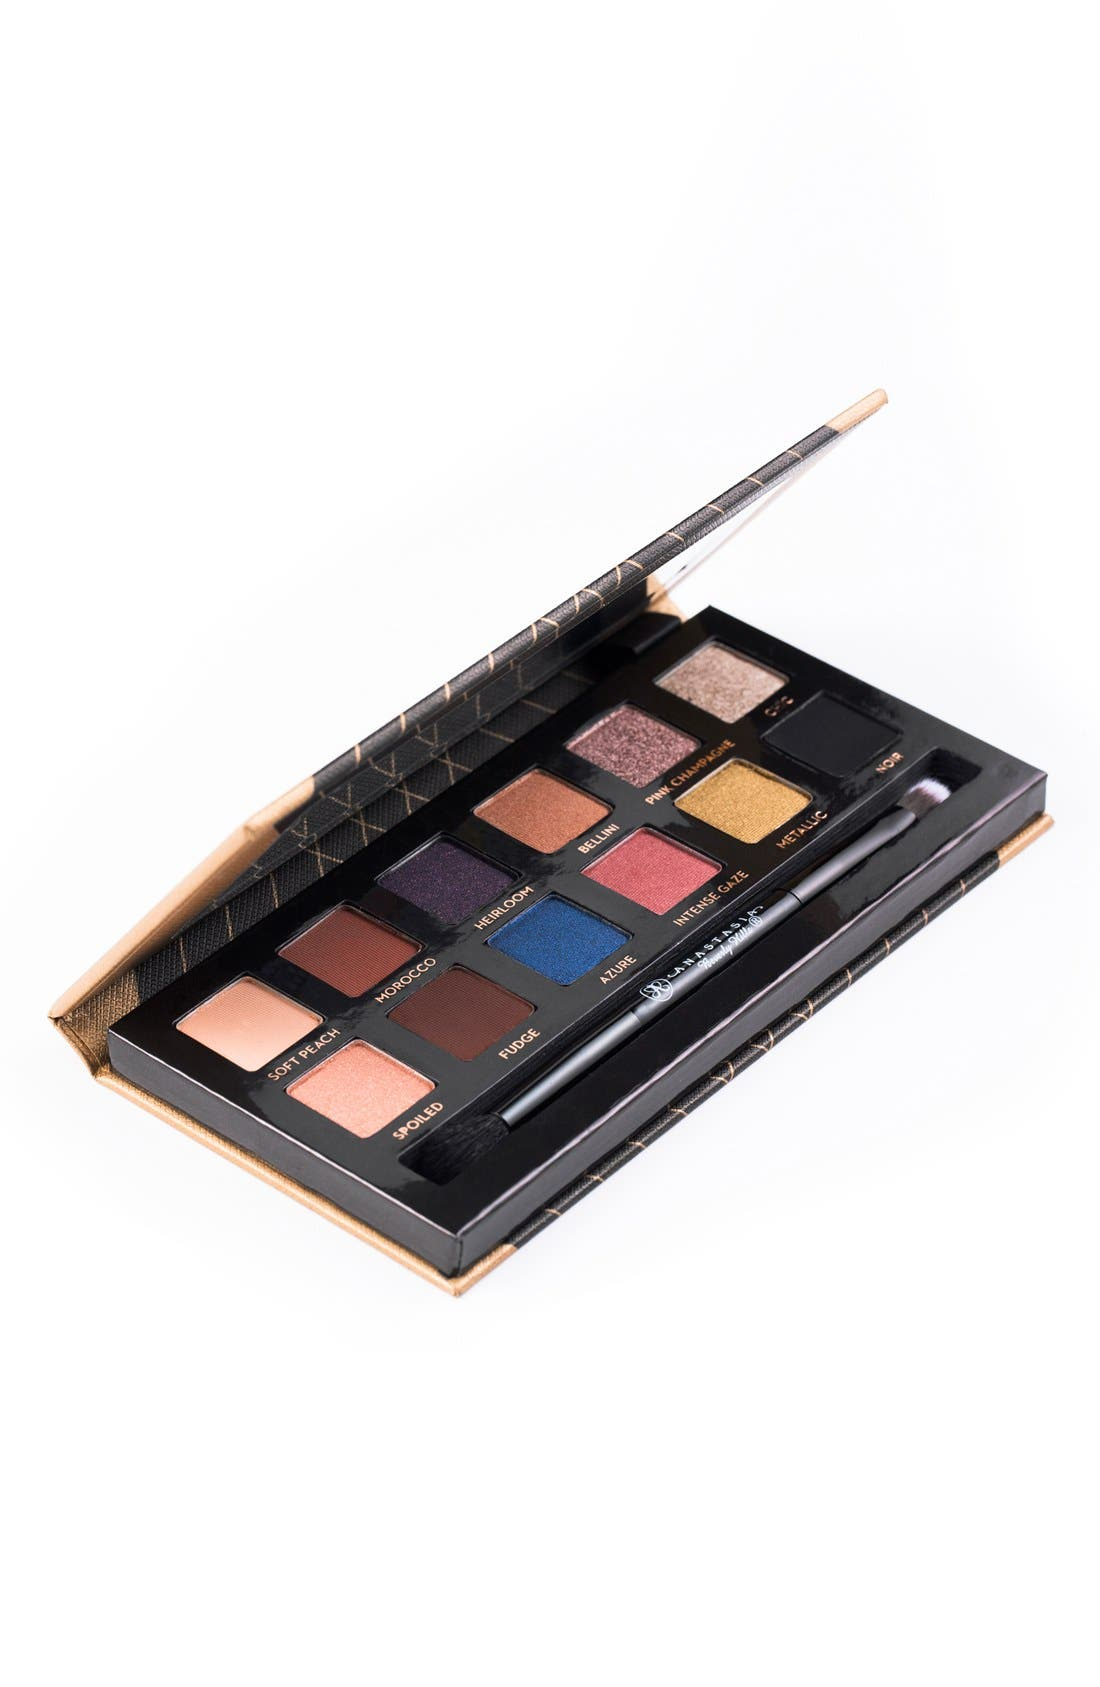 'World Traveler' Couture Eyeshadow Palette,                             Alternate thumbnail 2, color,                             000